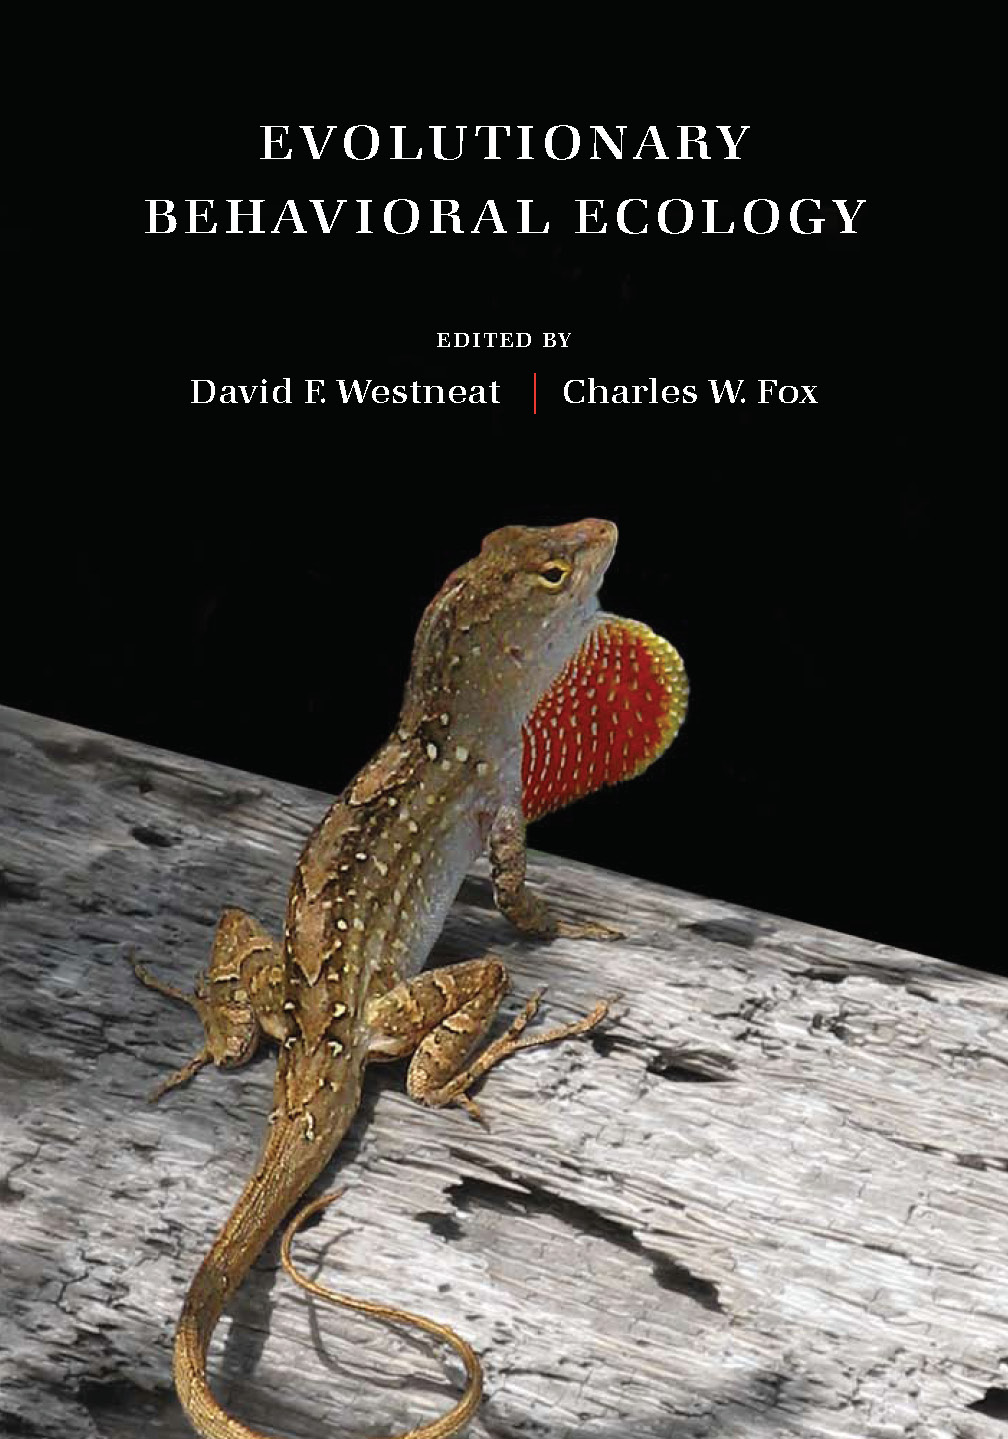 http://www.uky.edu/~cfox/Pubs/Behavioral_Ecology.jpg